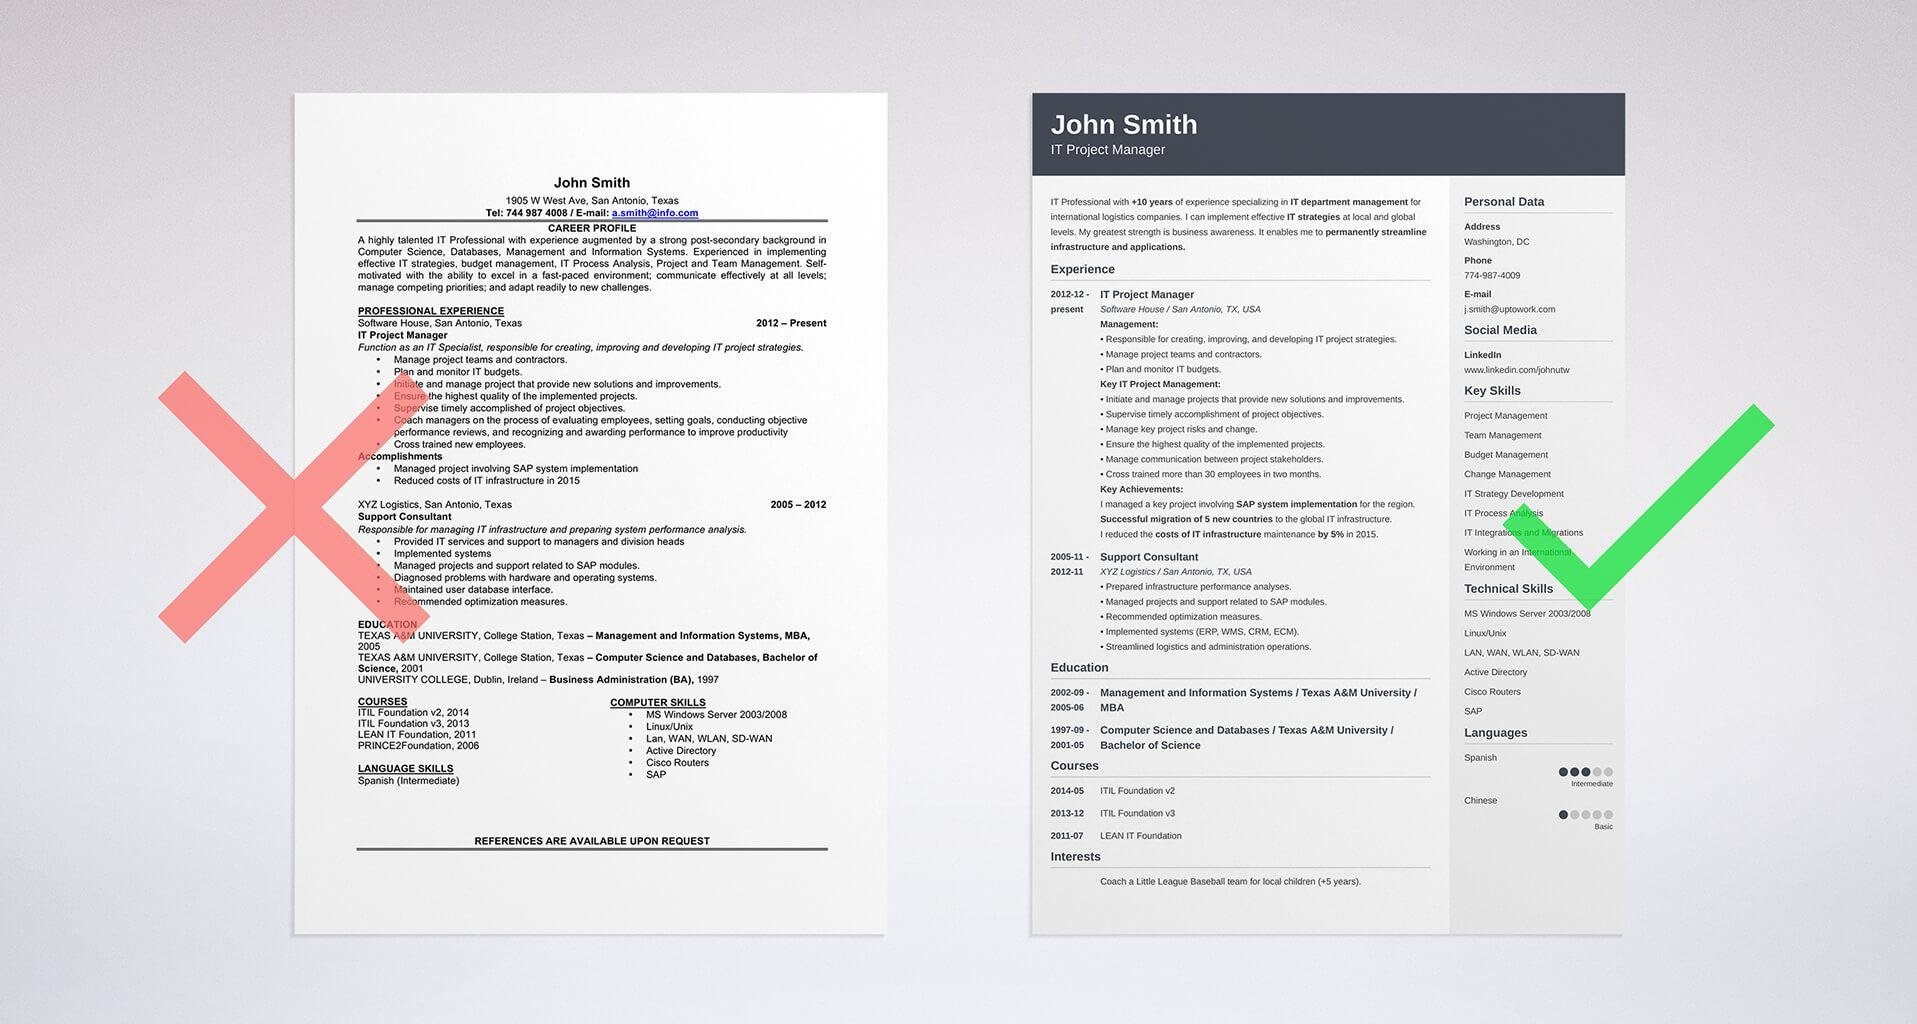 best resume format professional samples the perfect example of formats free templates Resume The Perfect Resume Format